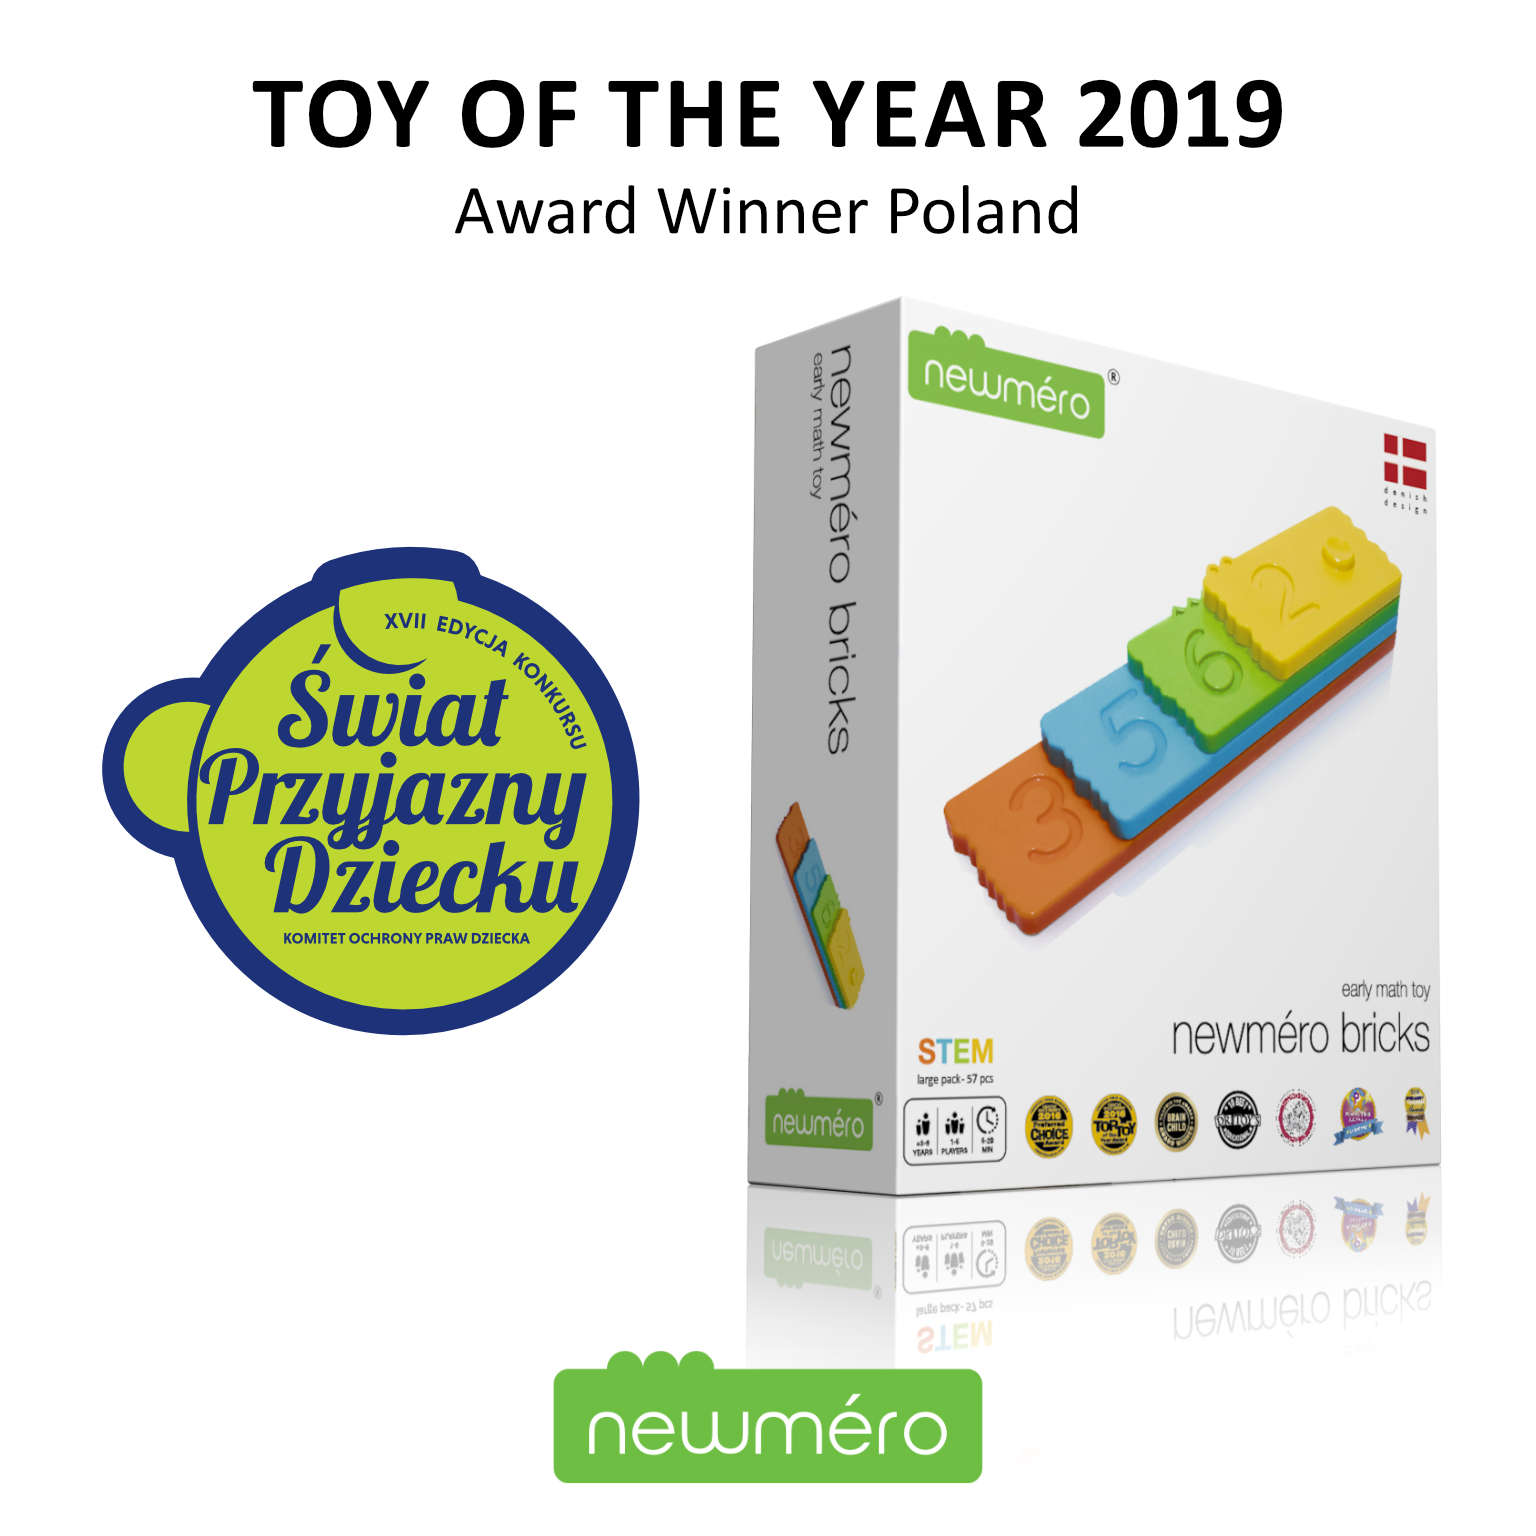 newmero_bricks_Toy_of_the_year_2019_Polish_award.jpg